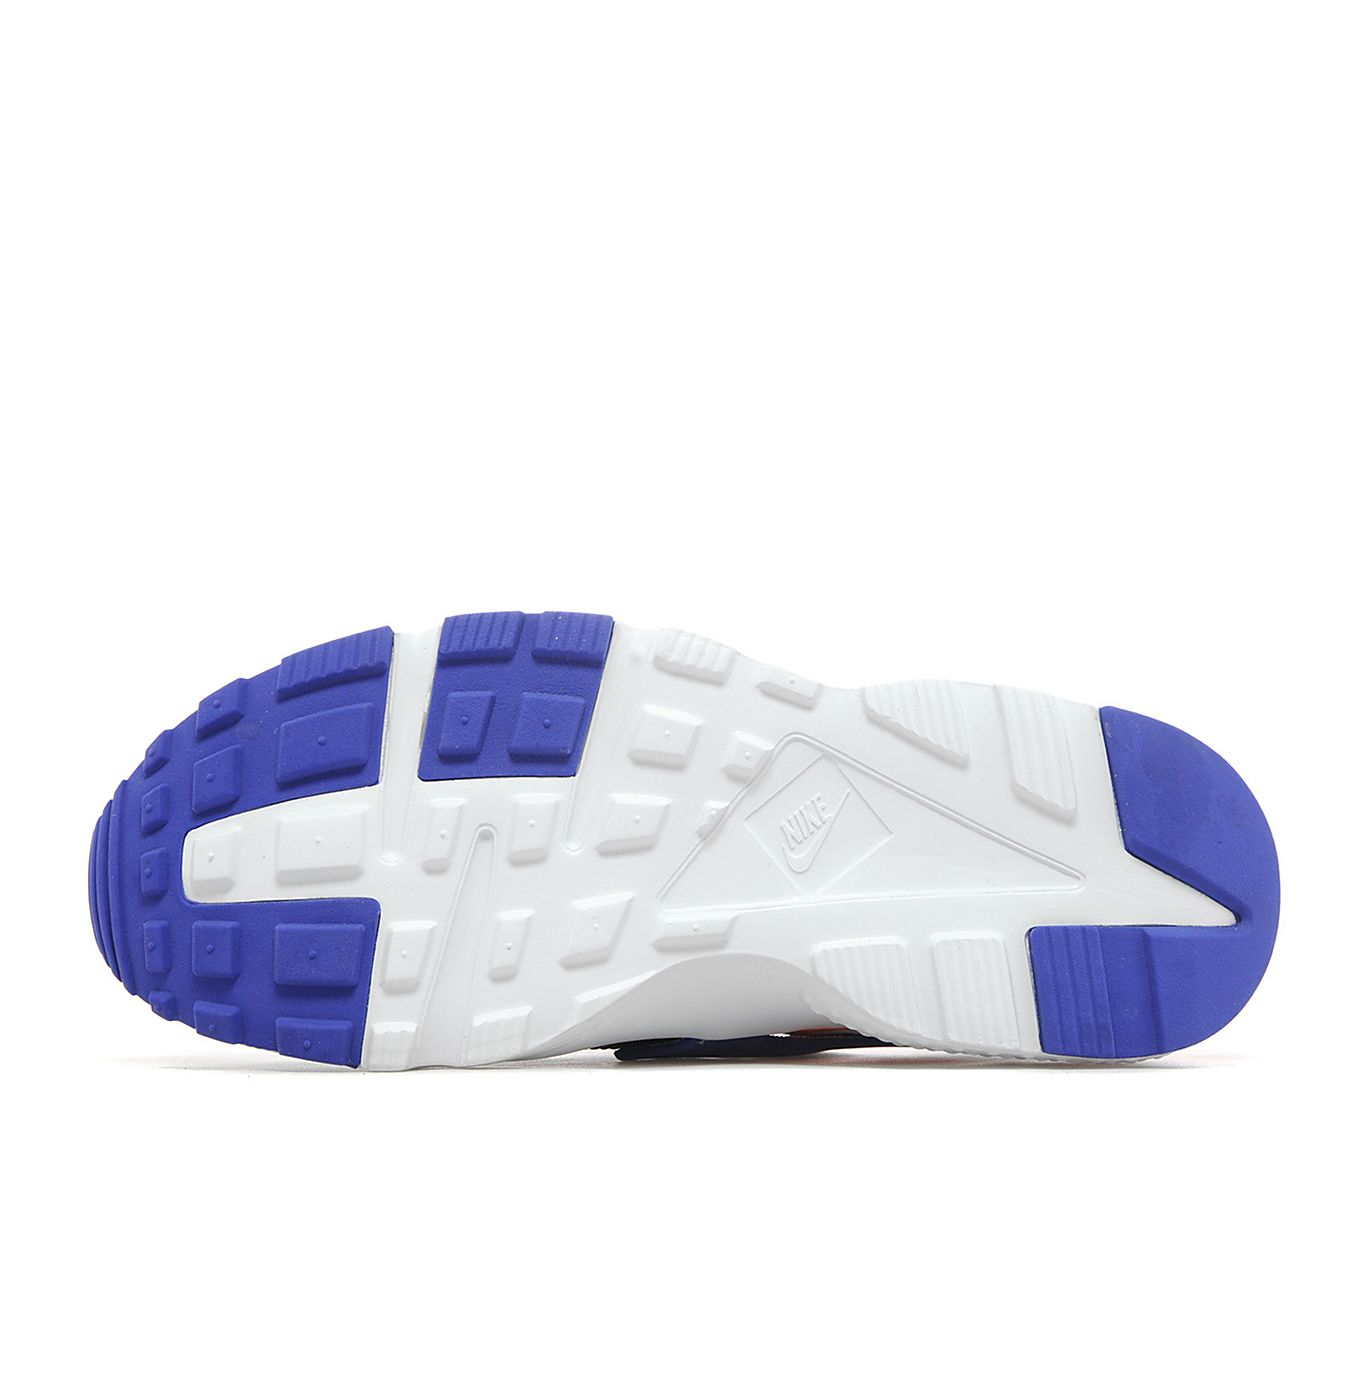 49668dcd223f The sole has been molded in white and violet to complete the color palette.  You can grab a pair now at JD Sports. Genuine Women Junior Nike Air Huarache  ...